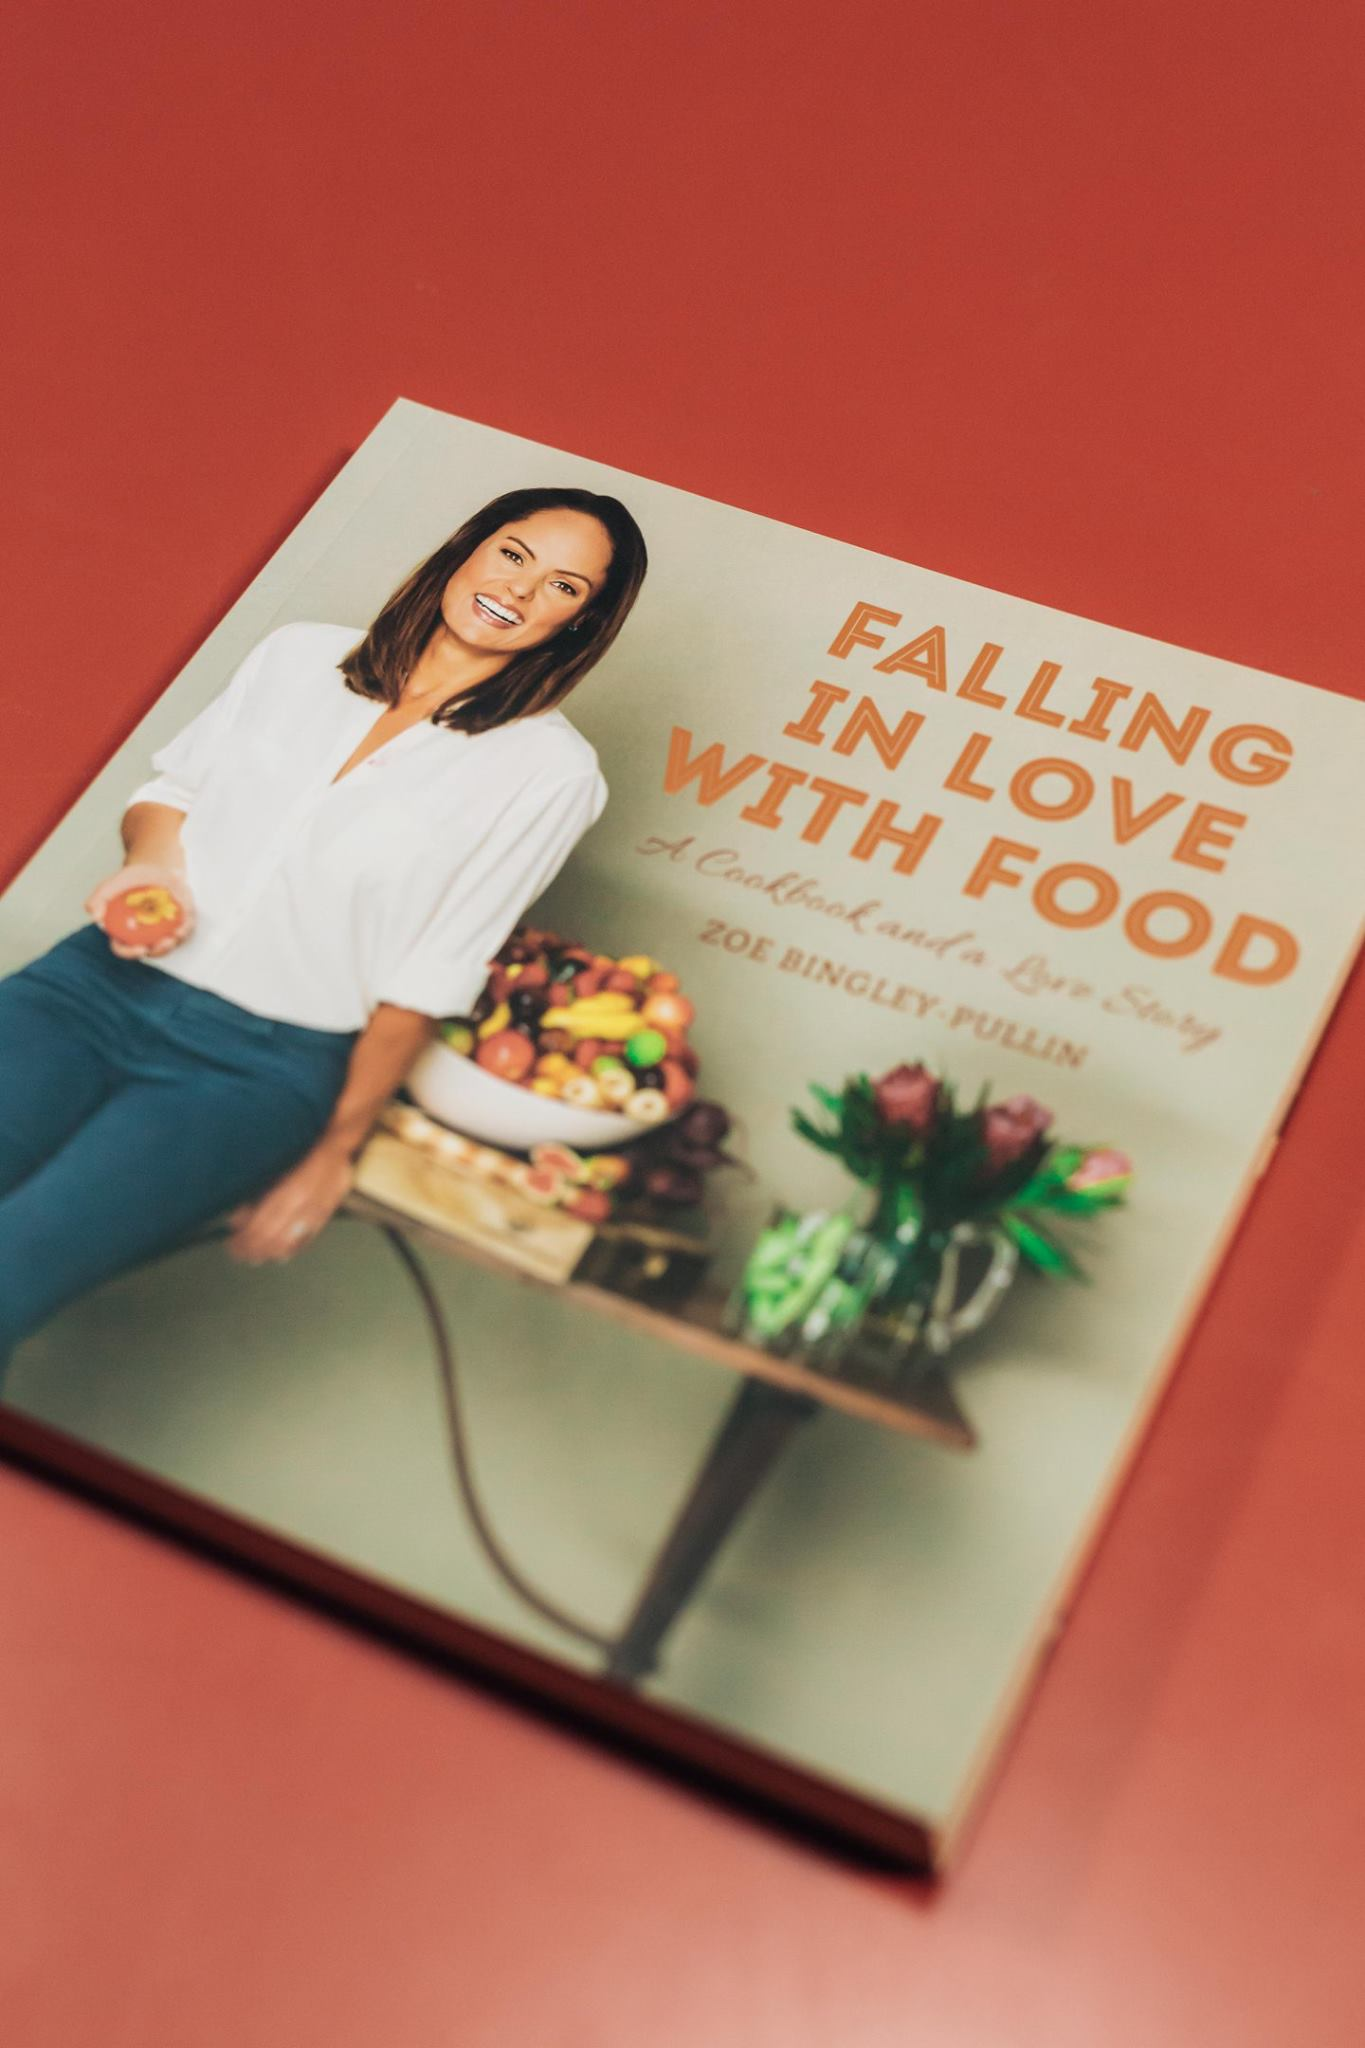 Every mama who came along to our Mama Creatives Mother's Day Celebration with Zoe Bingley-Pullin received a copy of Zoe's latest cookbook, 'Falling in Love with Food'. Zoe has now created an online program of the same name, super easy and fun, check it out: http://www.fallinginlovewithfood.com/